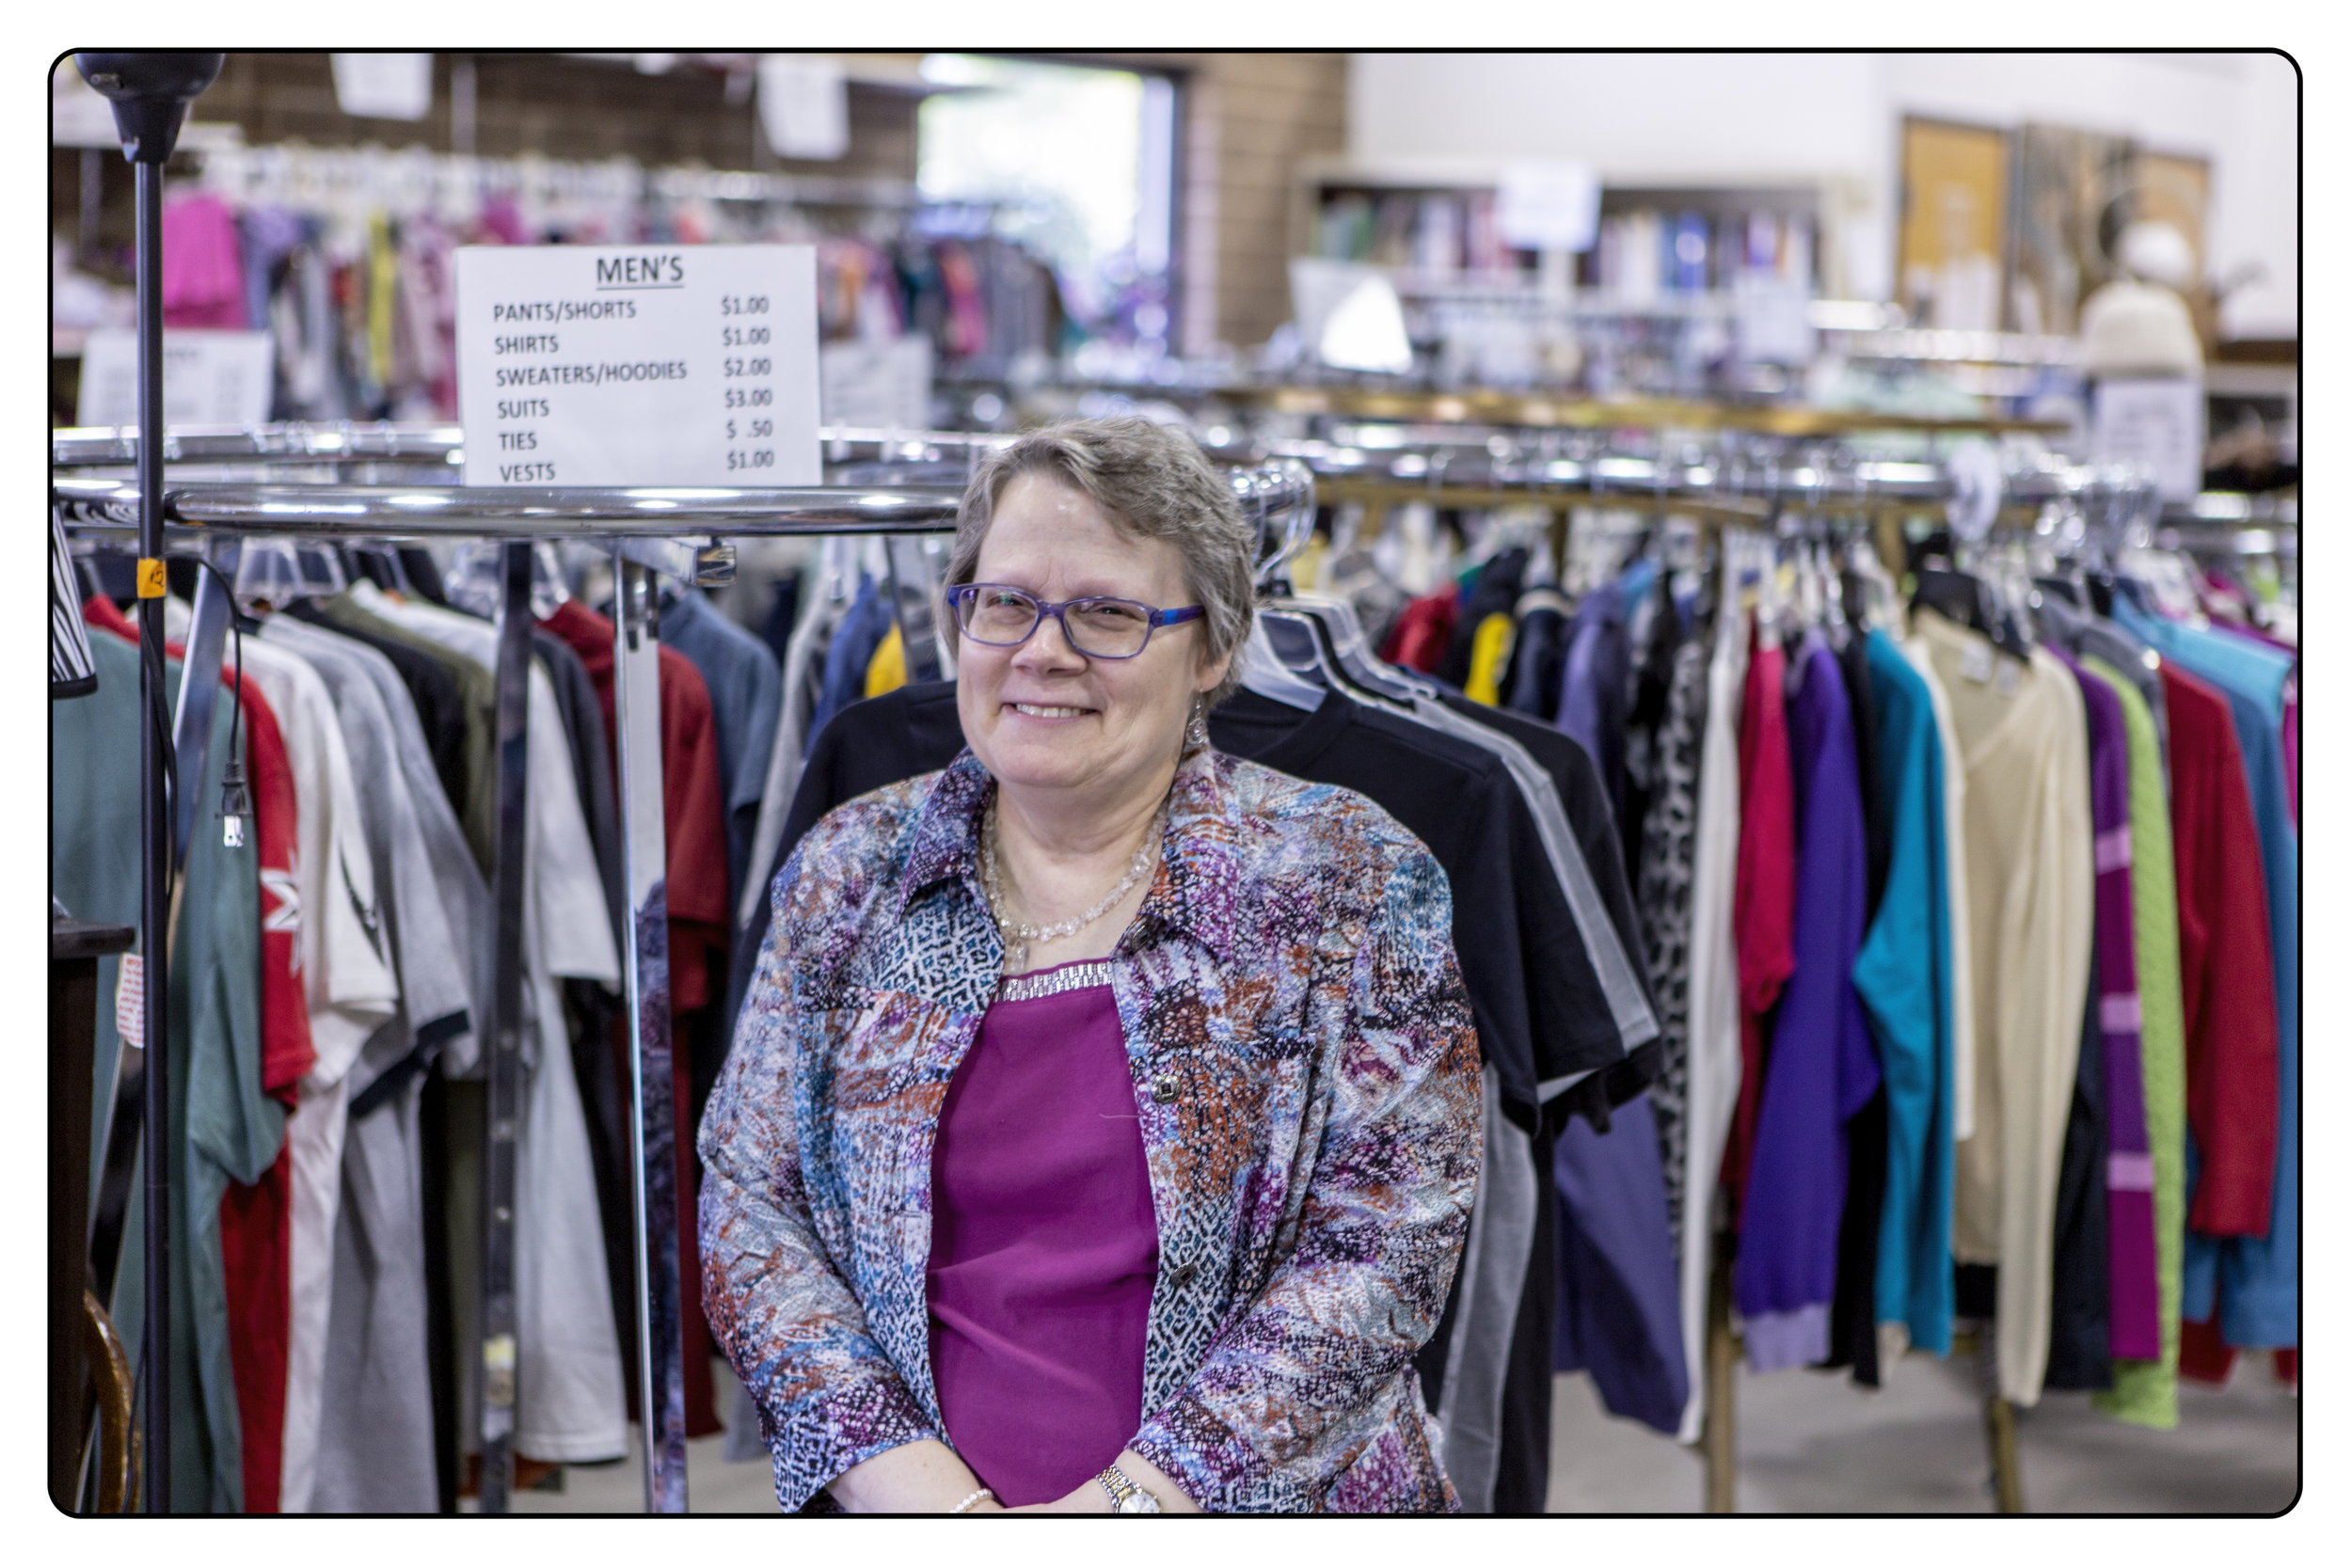 Linette Foley - Thrift Store Manager